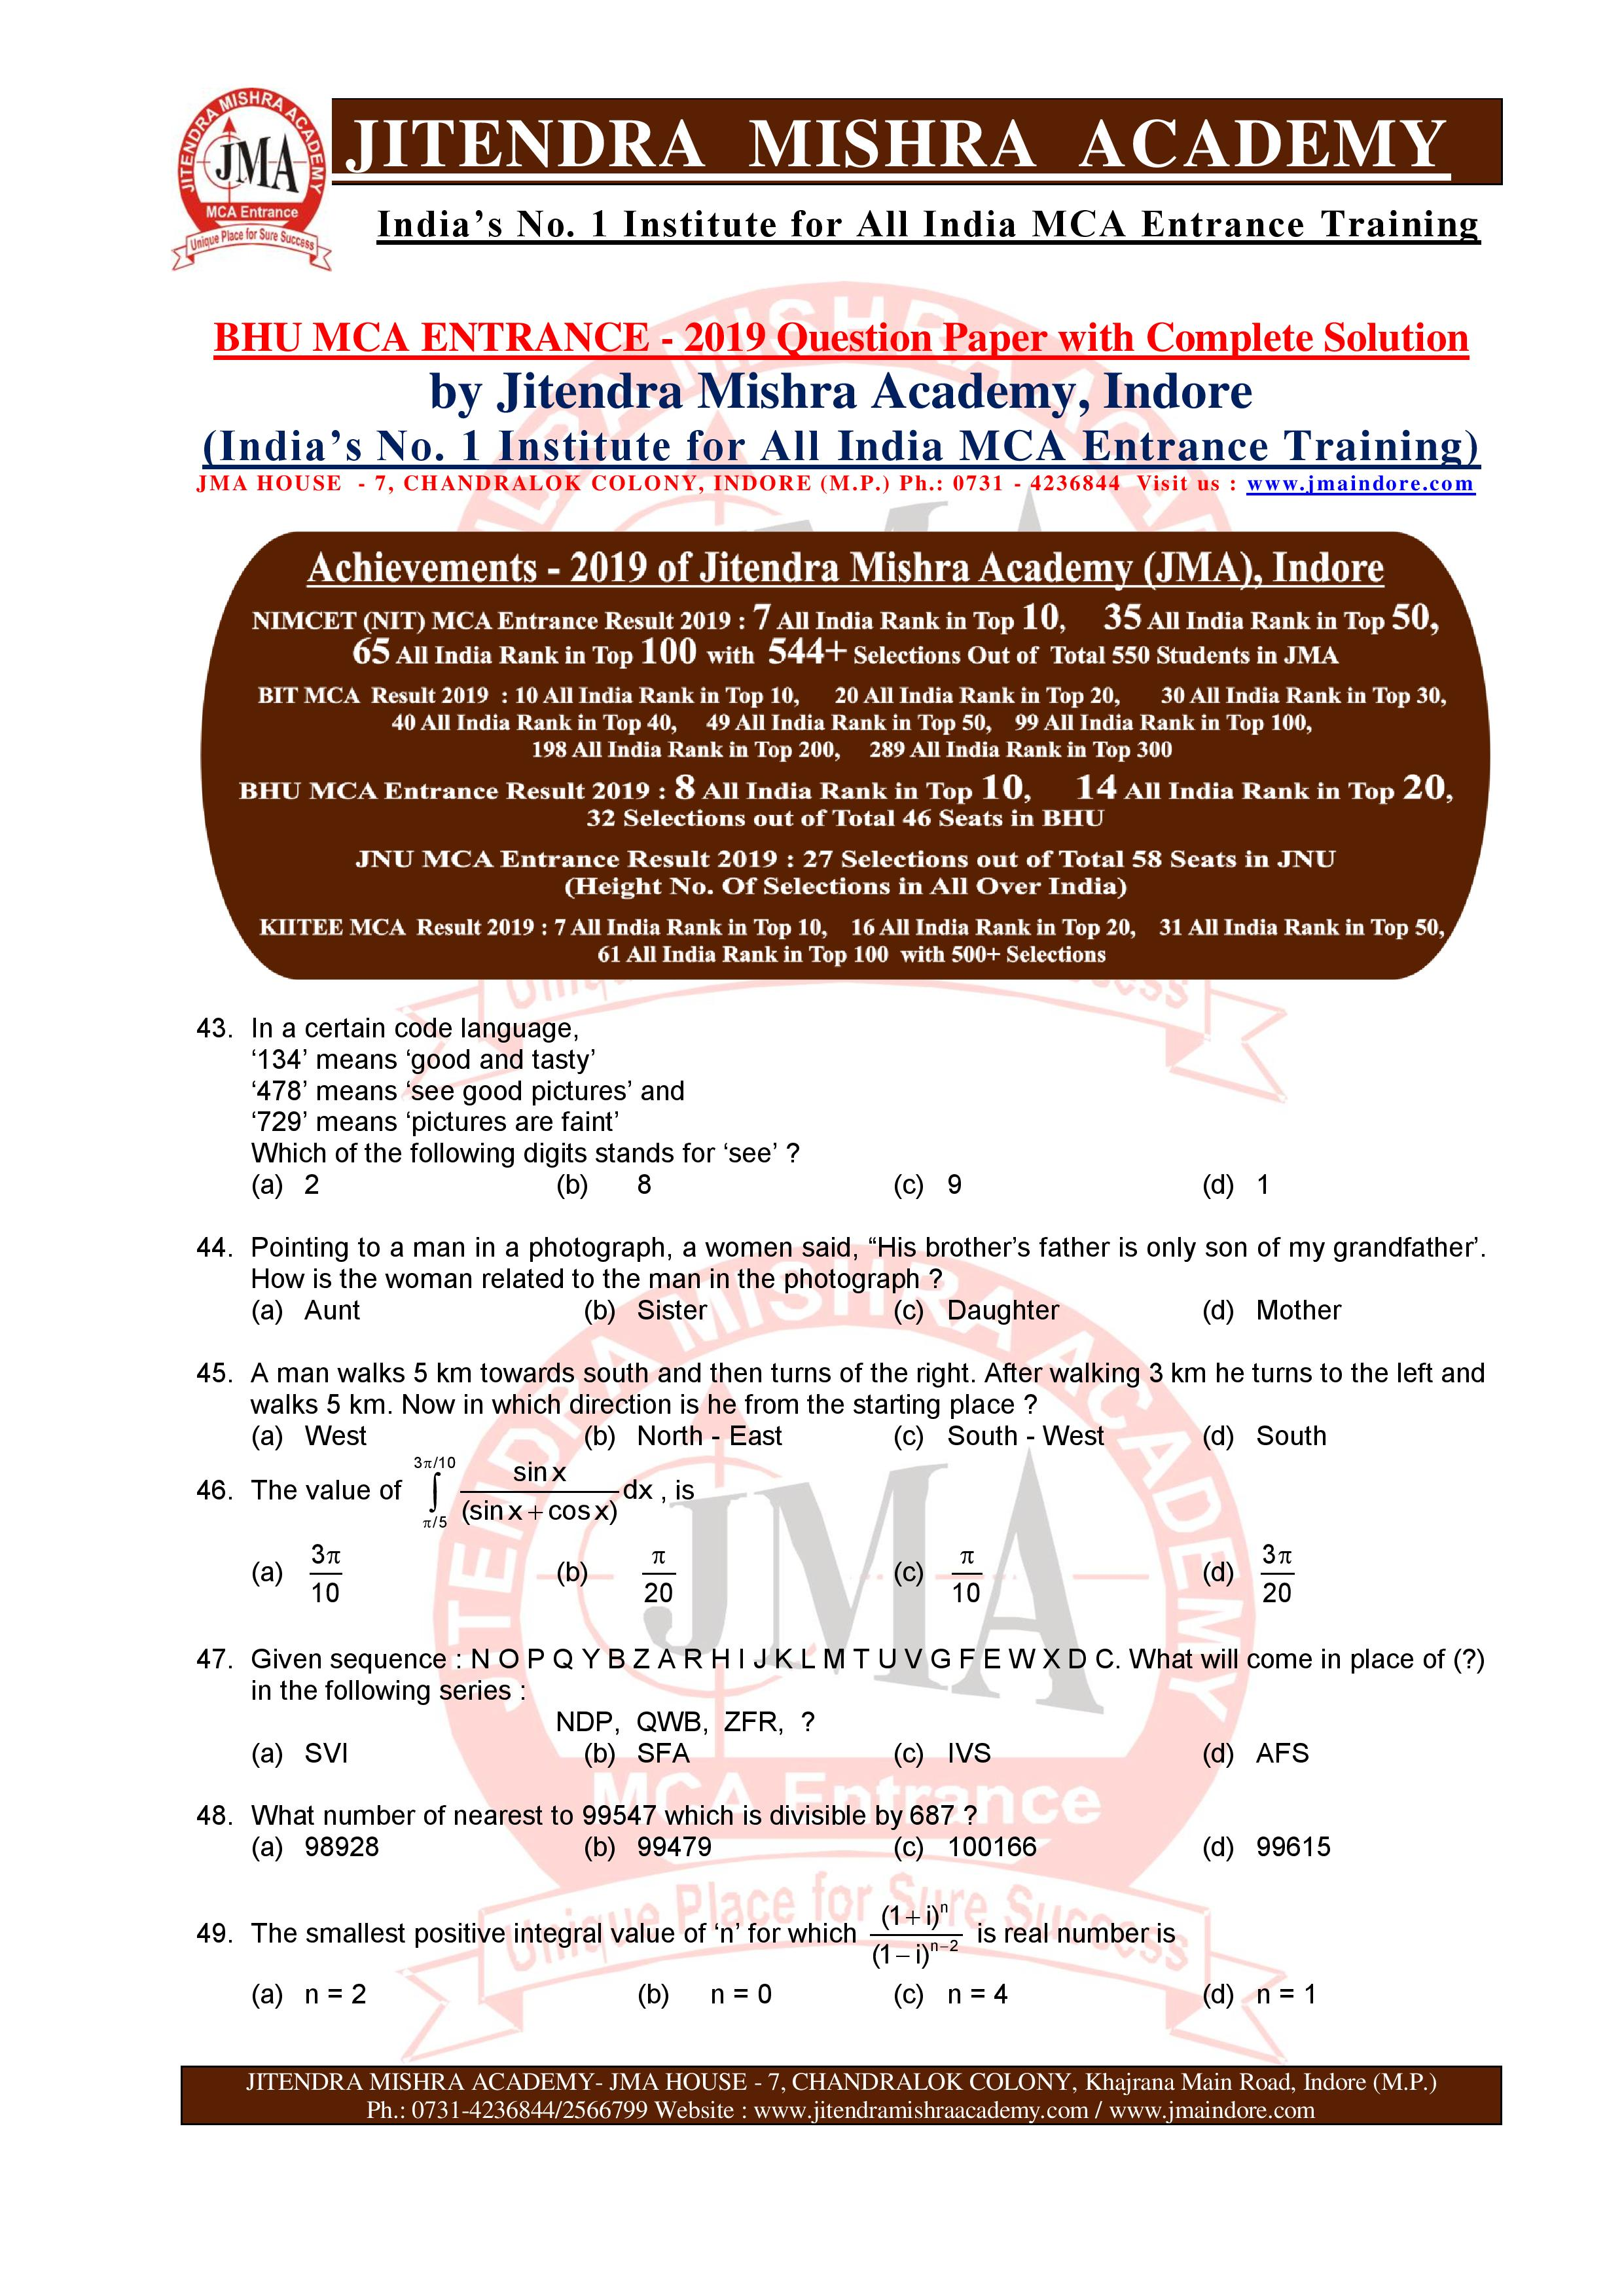 BHU MCA 2019 QUESTION PAPER-page-008